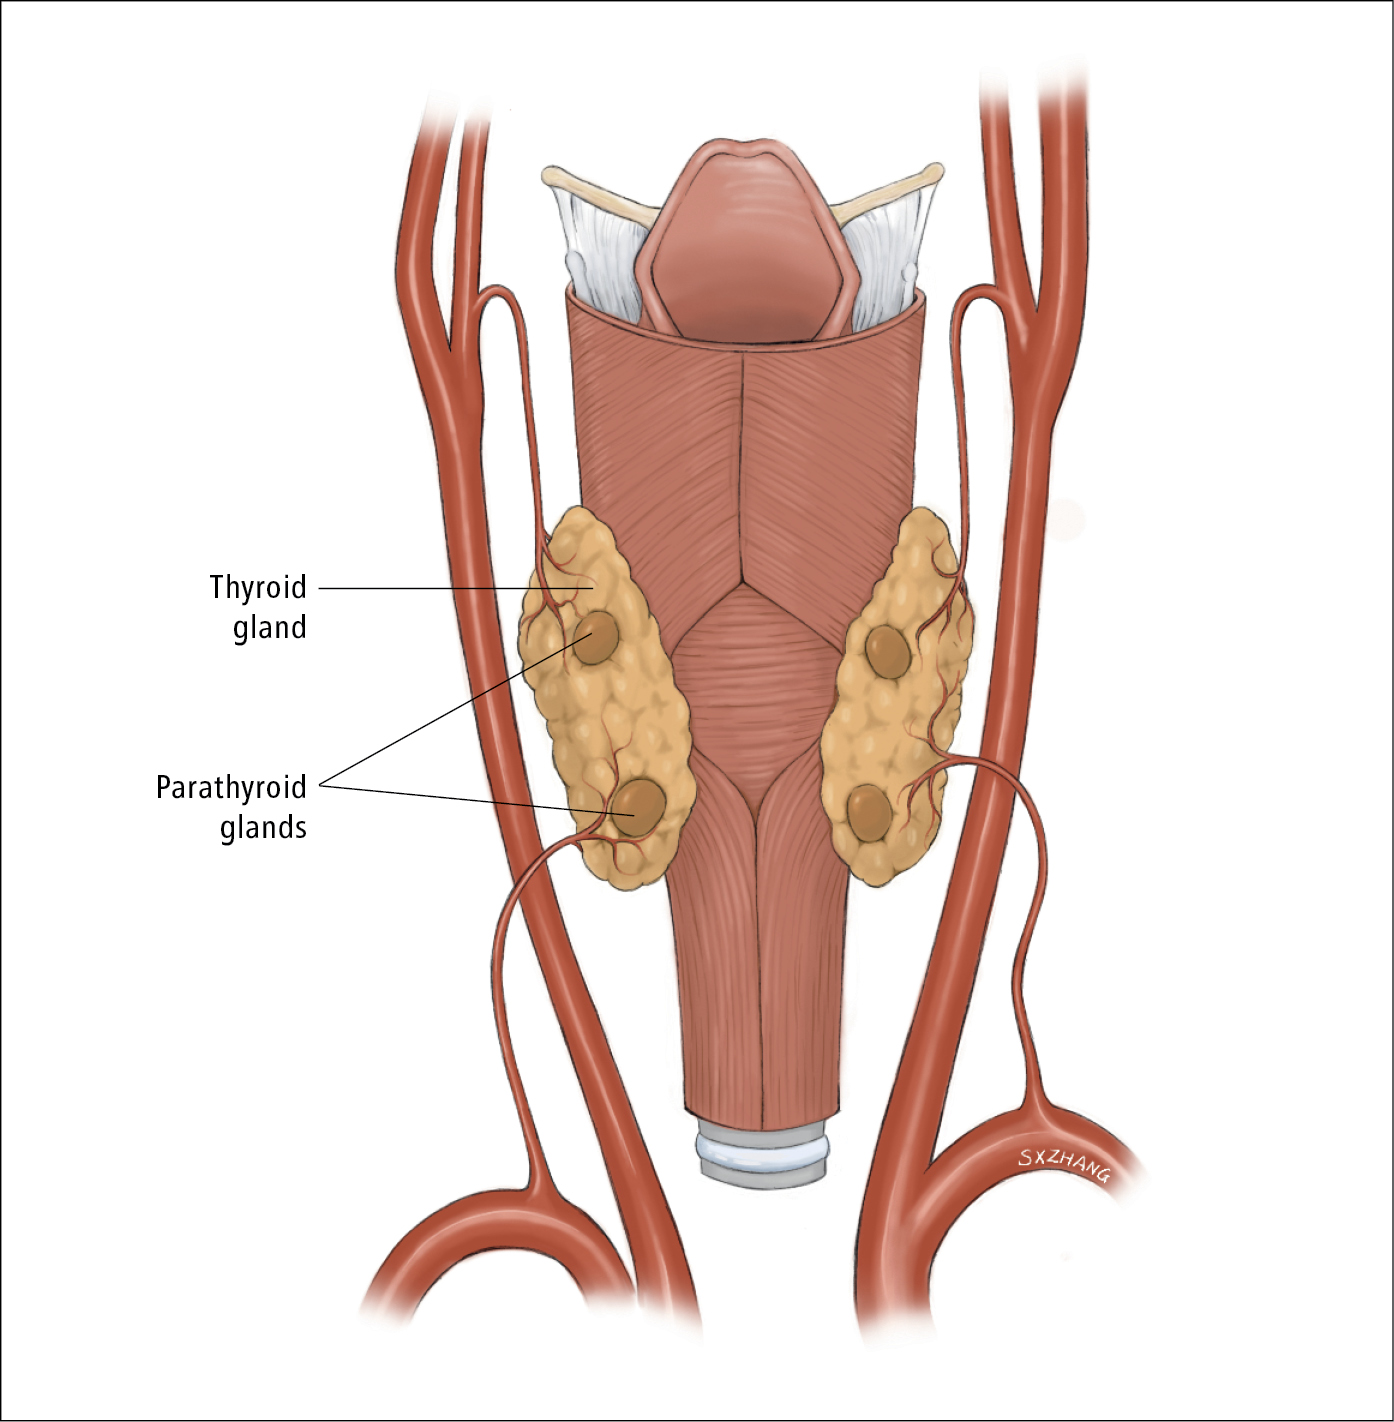 Figure 031_4_4270.  Anatomy of the parathyroid gland (posterior view).  Illustration courtesy of Dr Shannon Zhang.